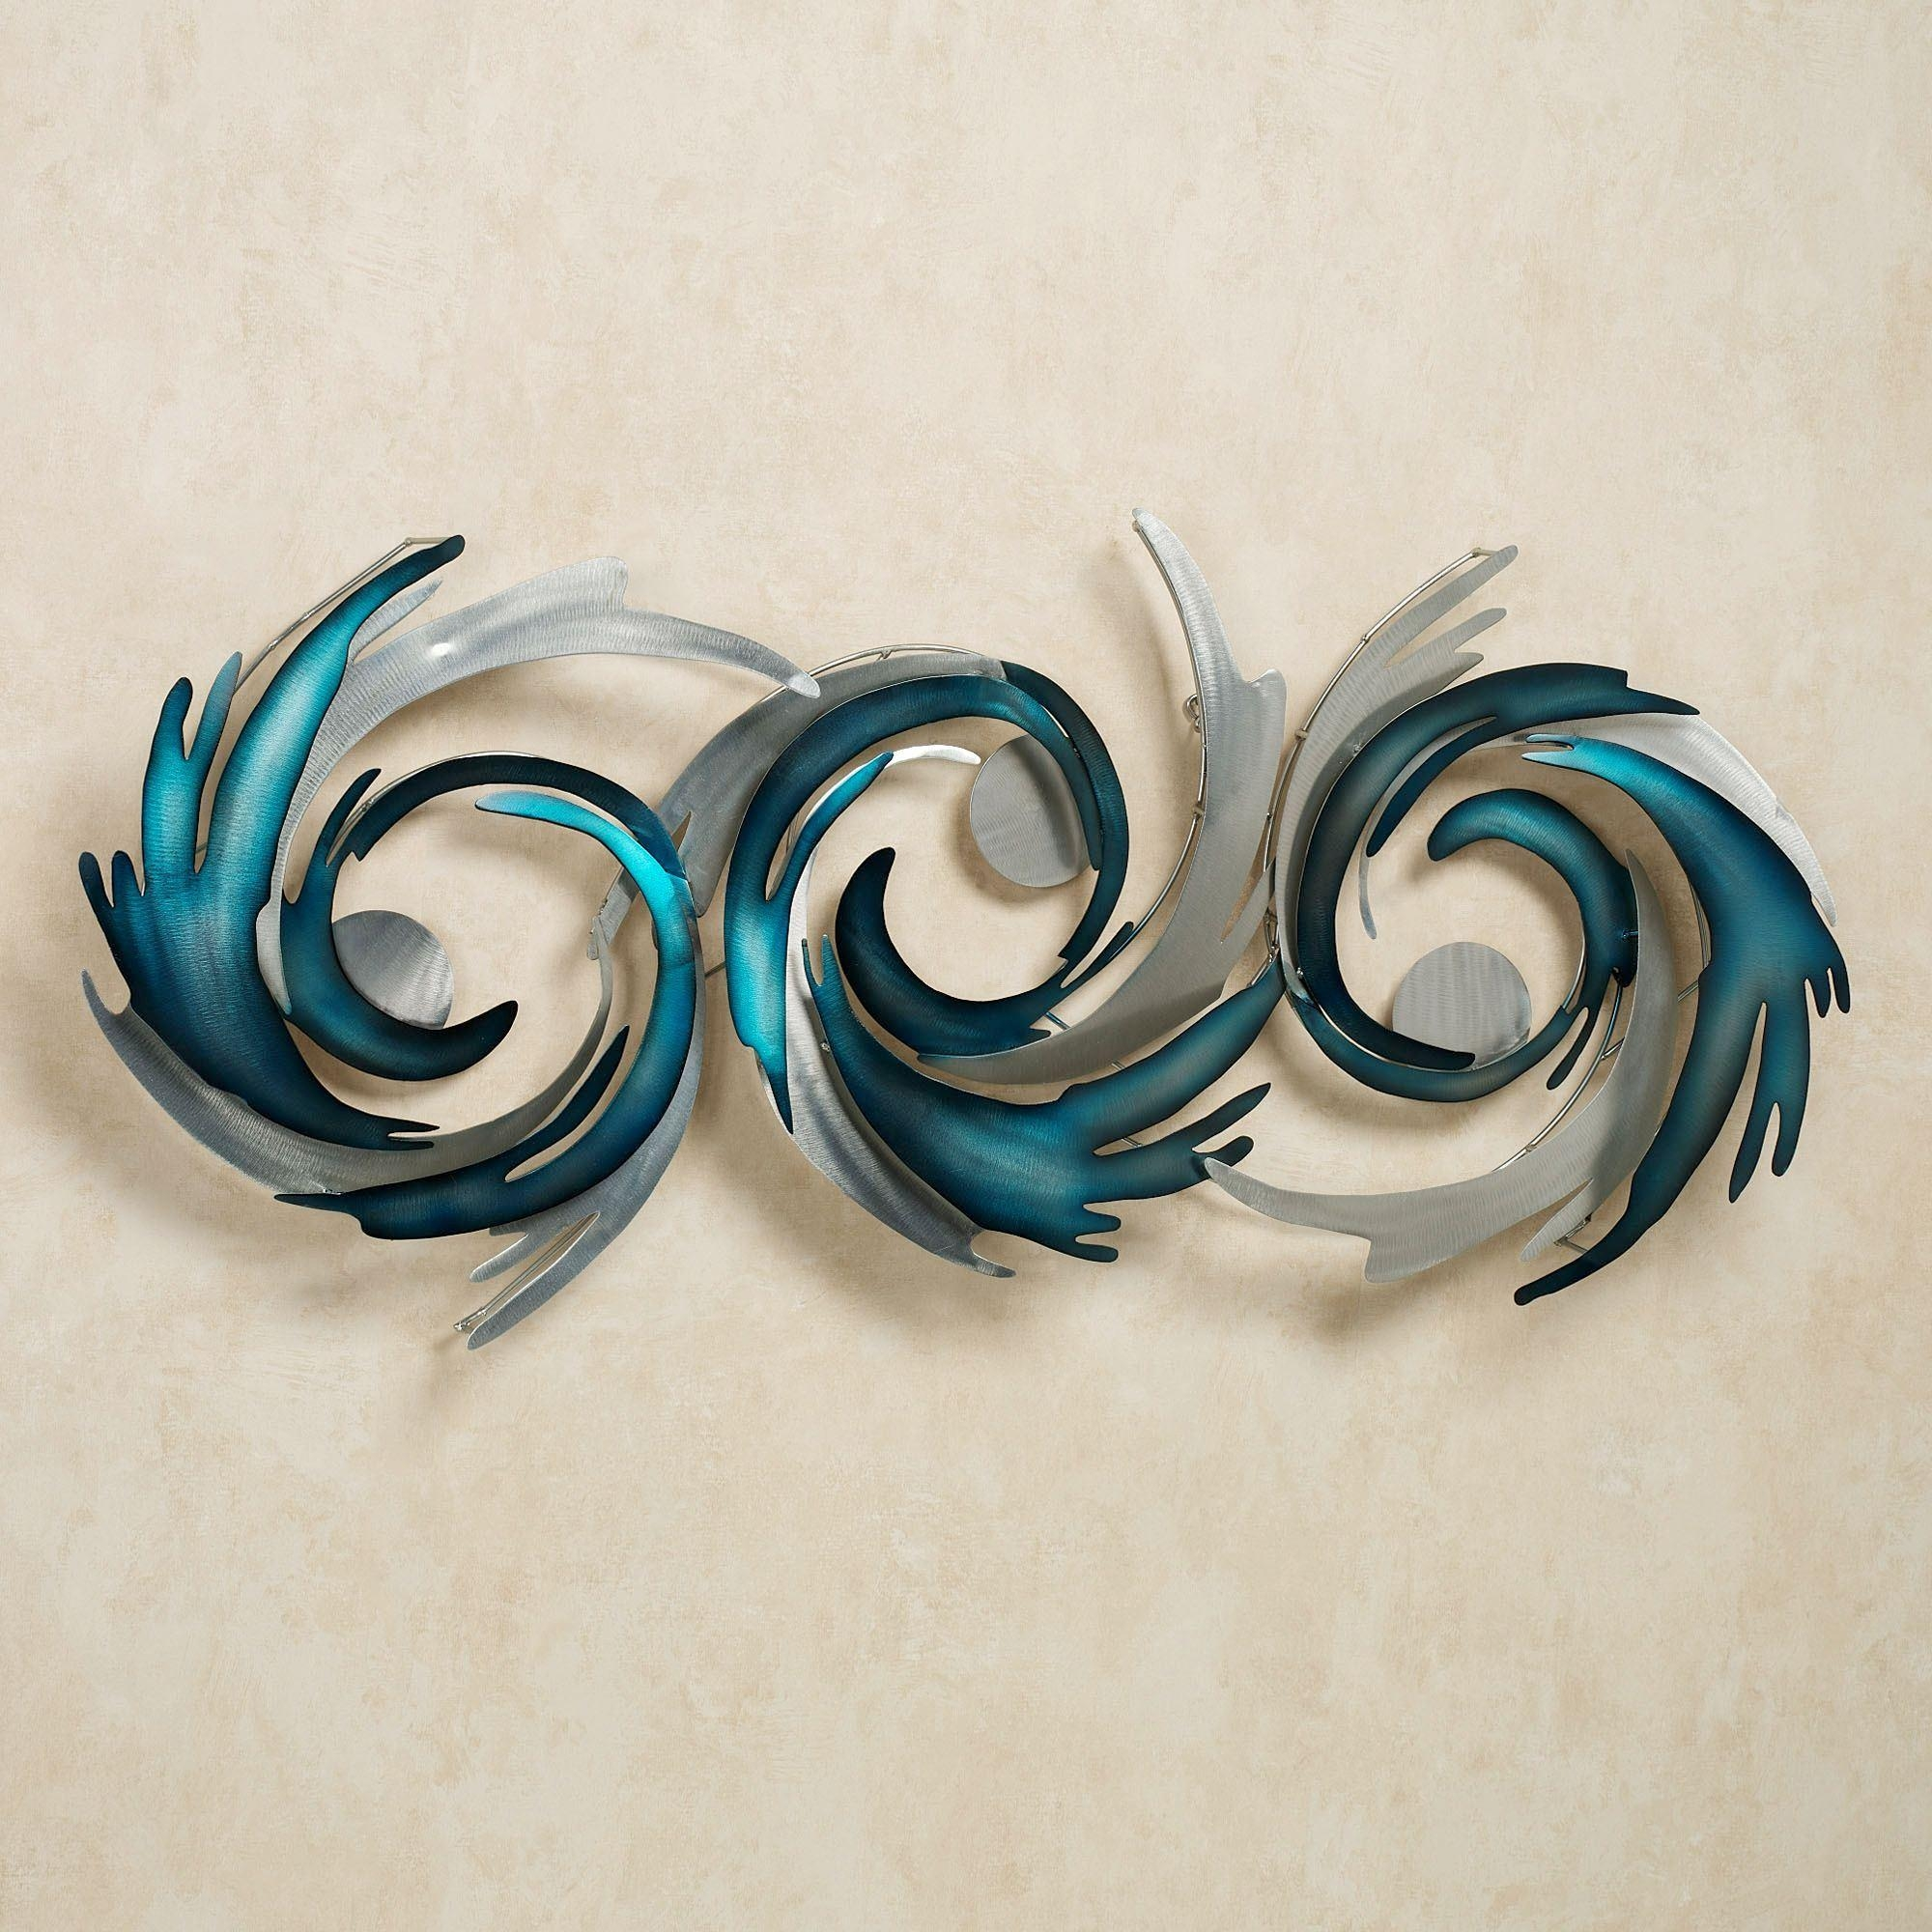 Contemporary Metal Wall Art Sculptures | Touch Of Class In Teal Metal Wall Art (Image 3 of 20)